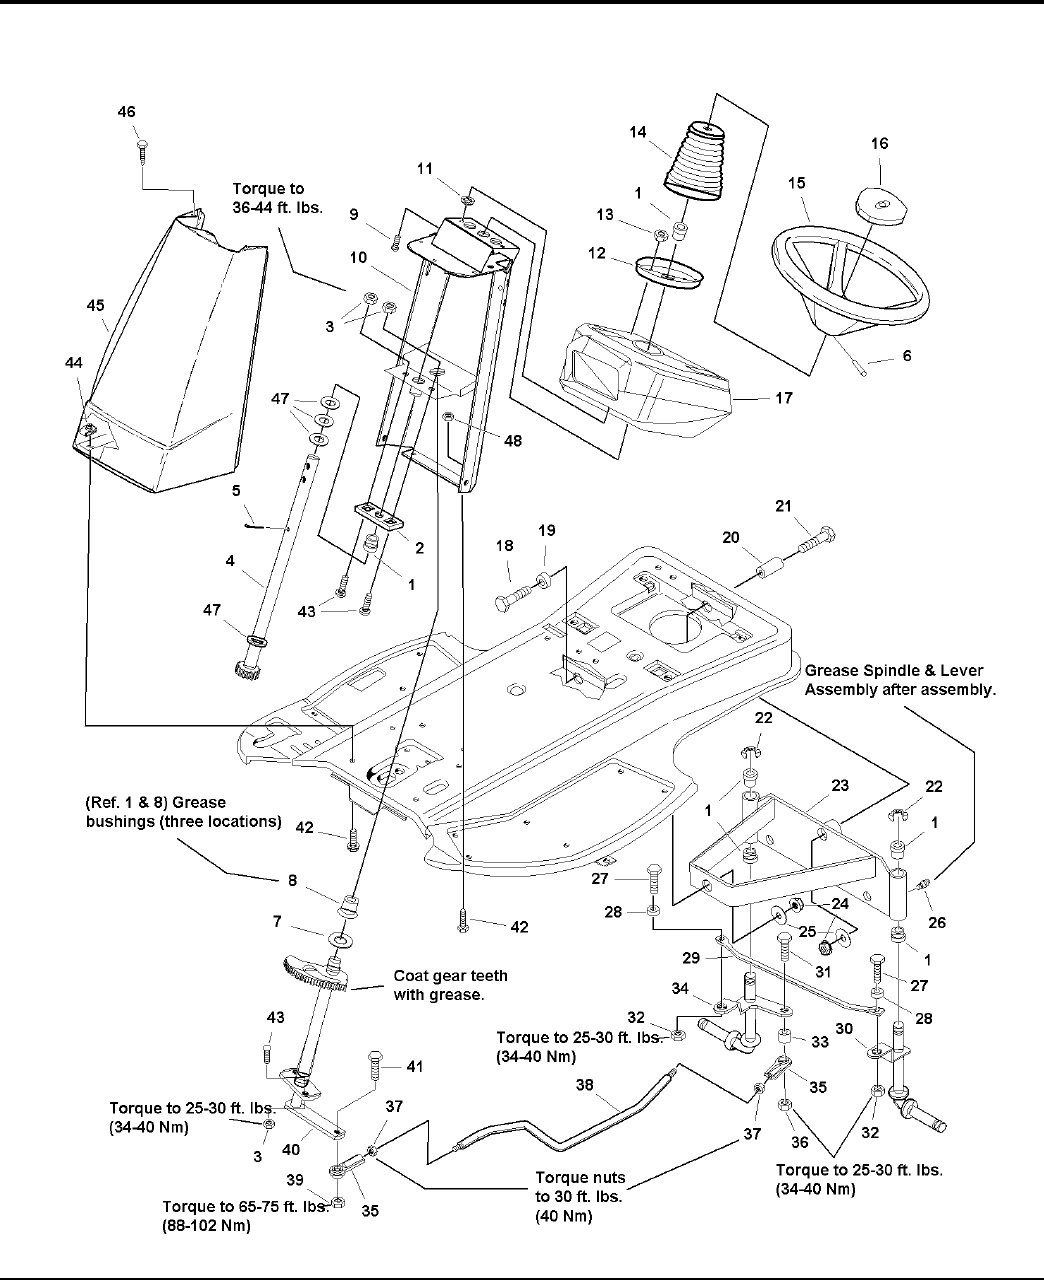 Page 8 of Simplicity Lawn Mower Lancer / 4400 User Guide